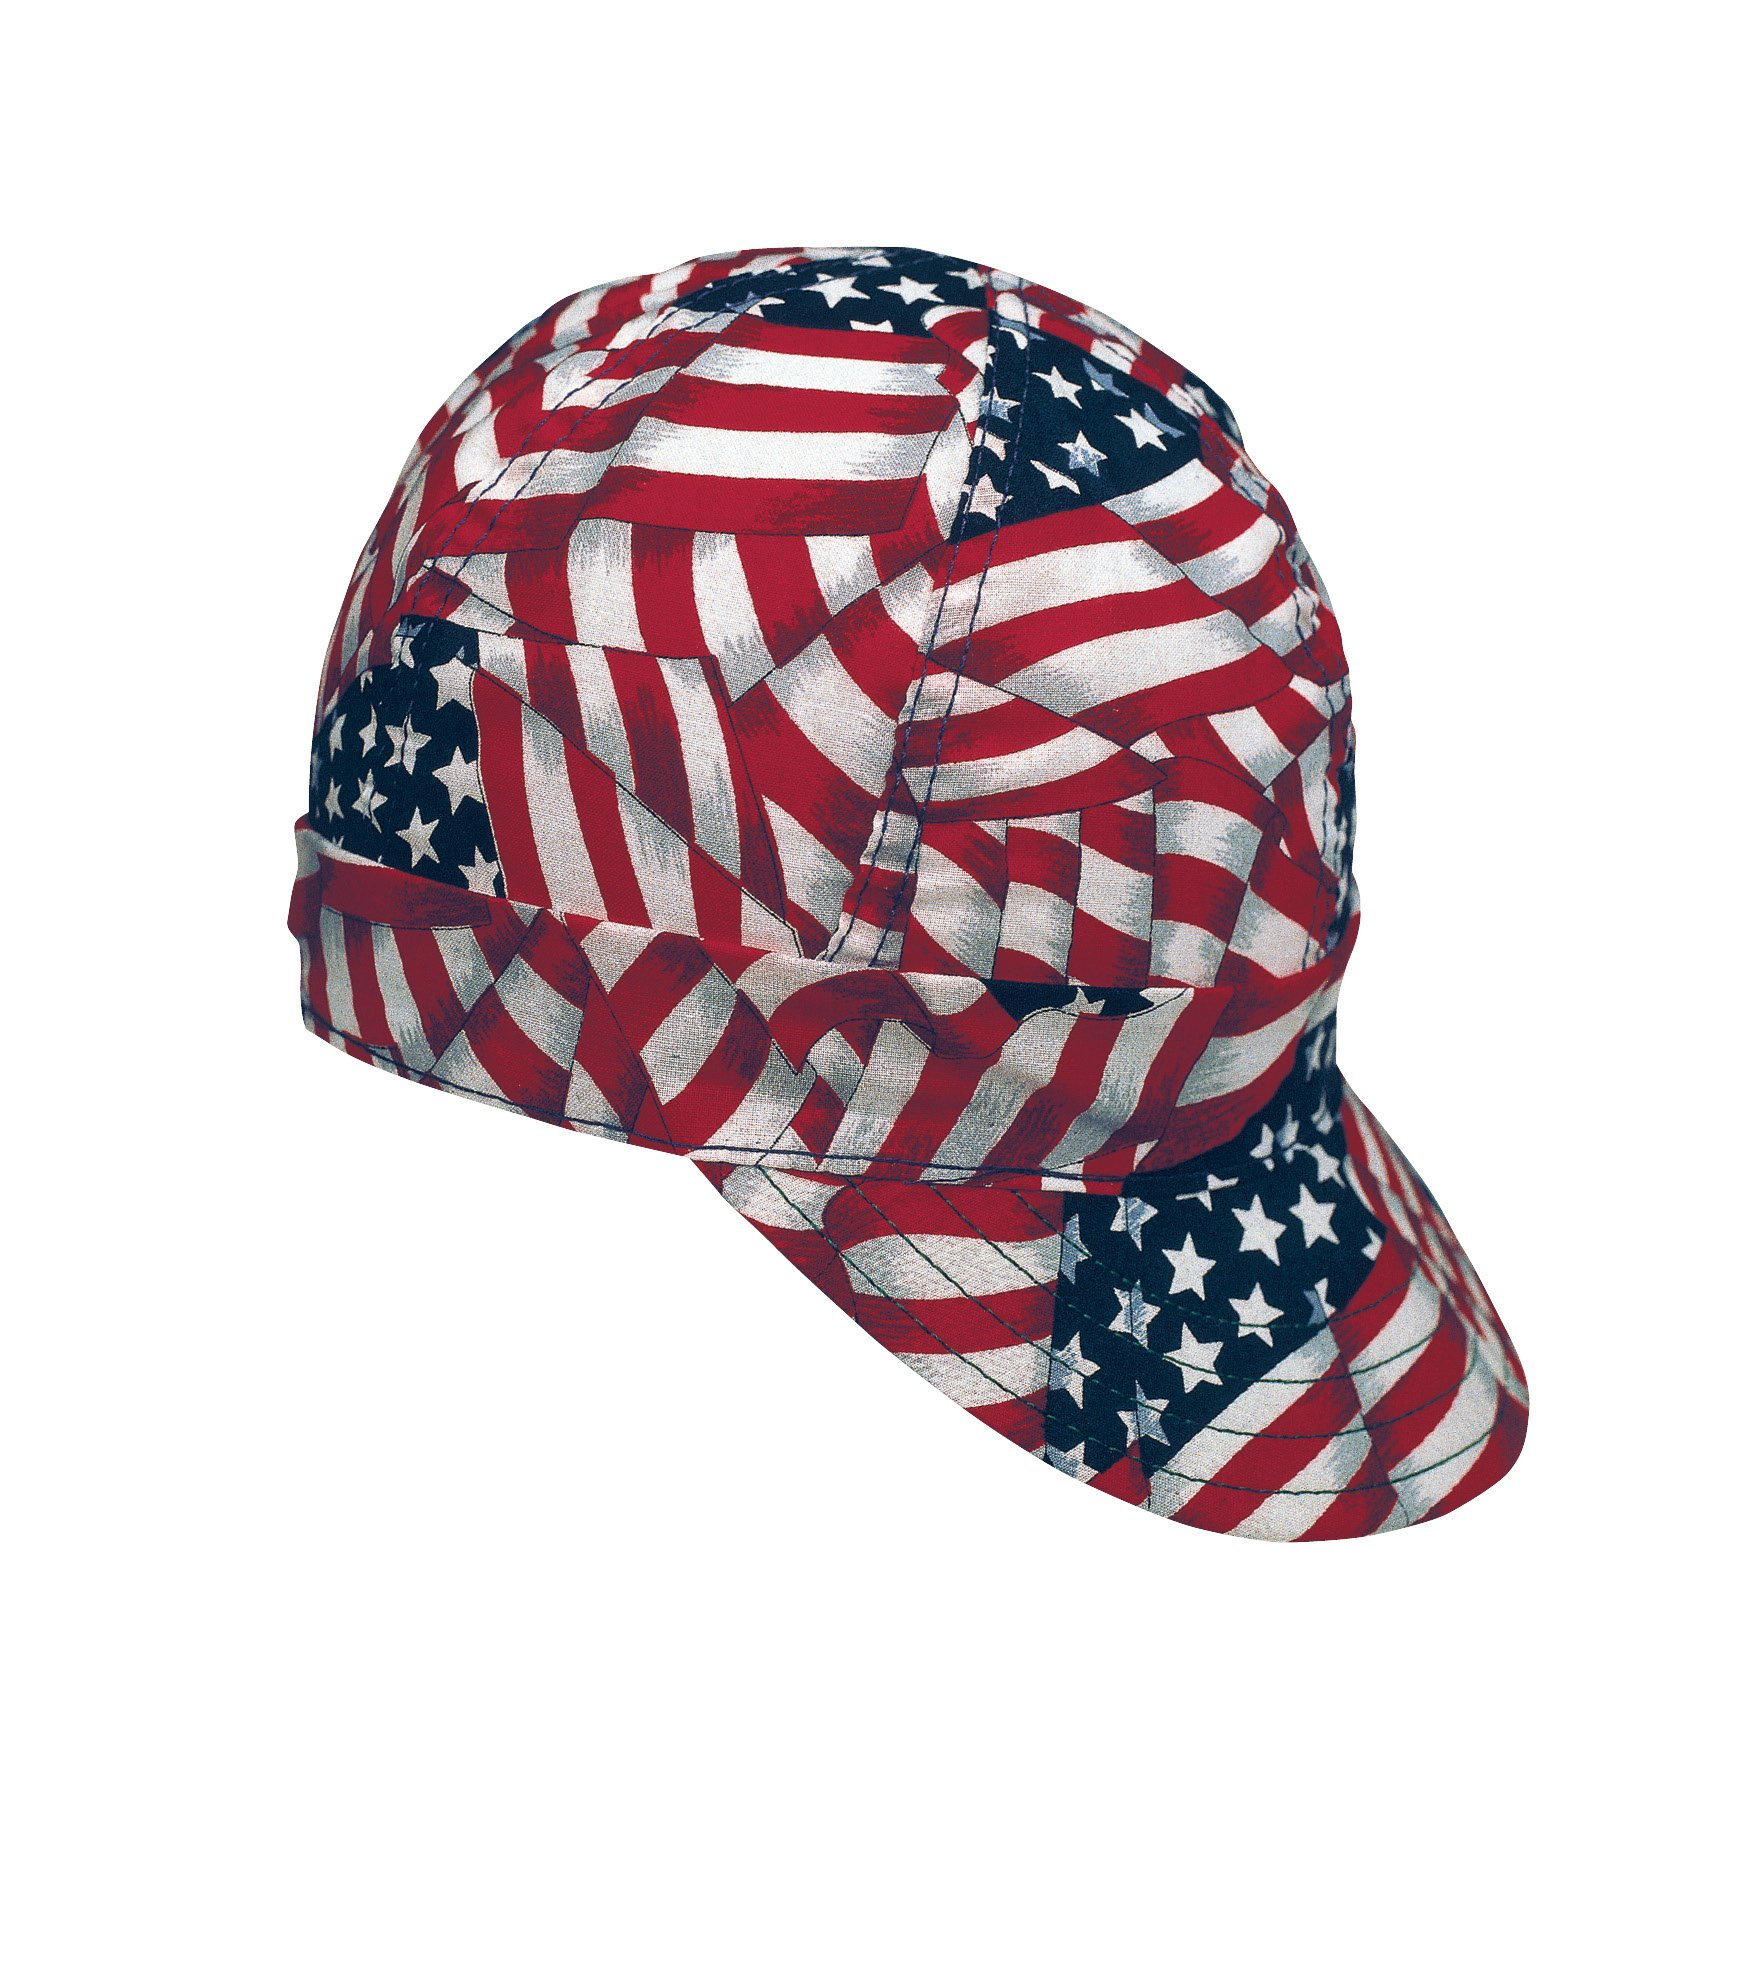 Mutual Industries 00336-00000-0007 Kromer USA Flag Style Welder Cap 7, Cotton, Length 5'', Width 6'' by Mutual Industries